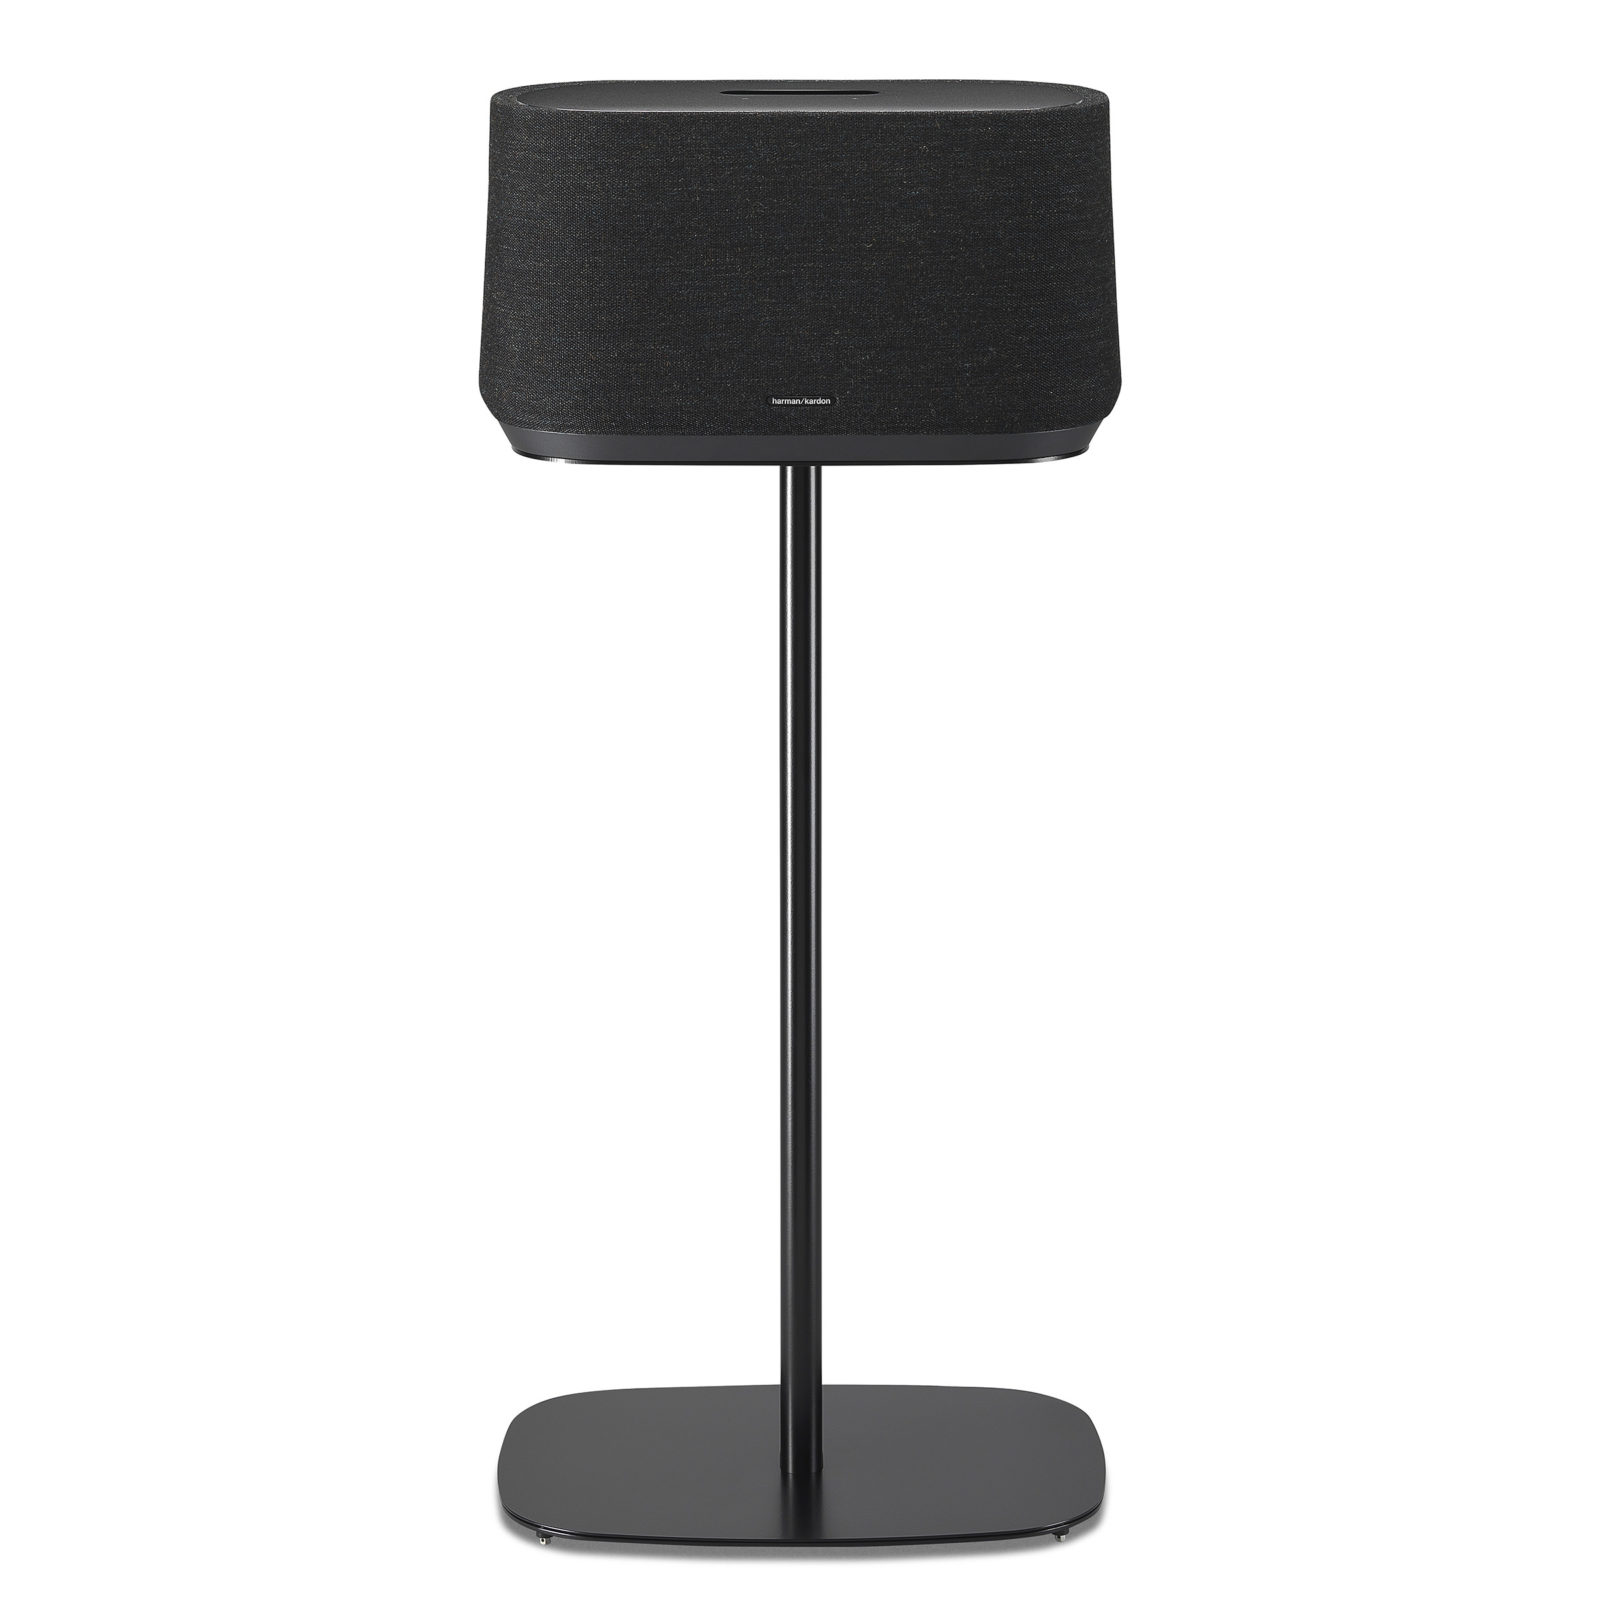 Harman Kardon Citation 500 standaard zwart 10